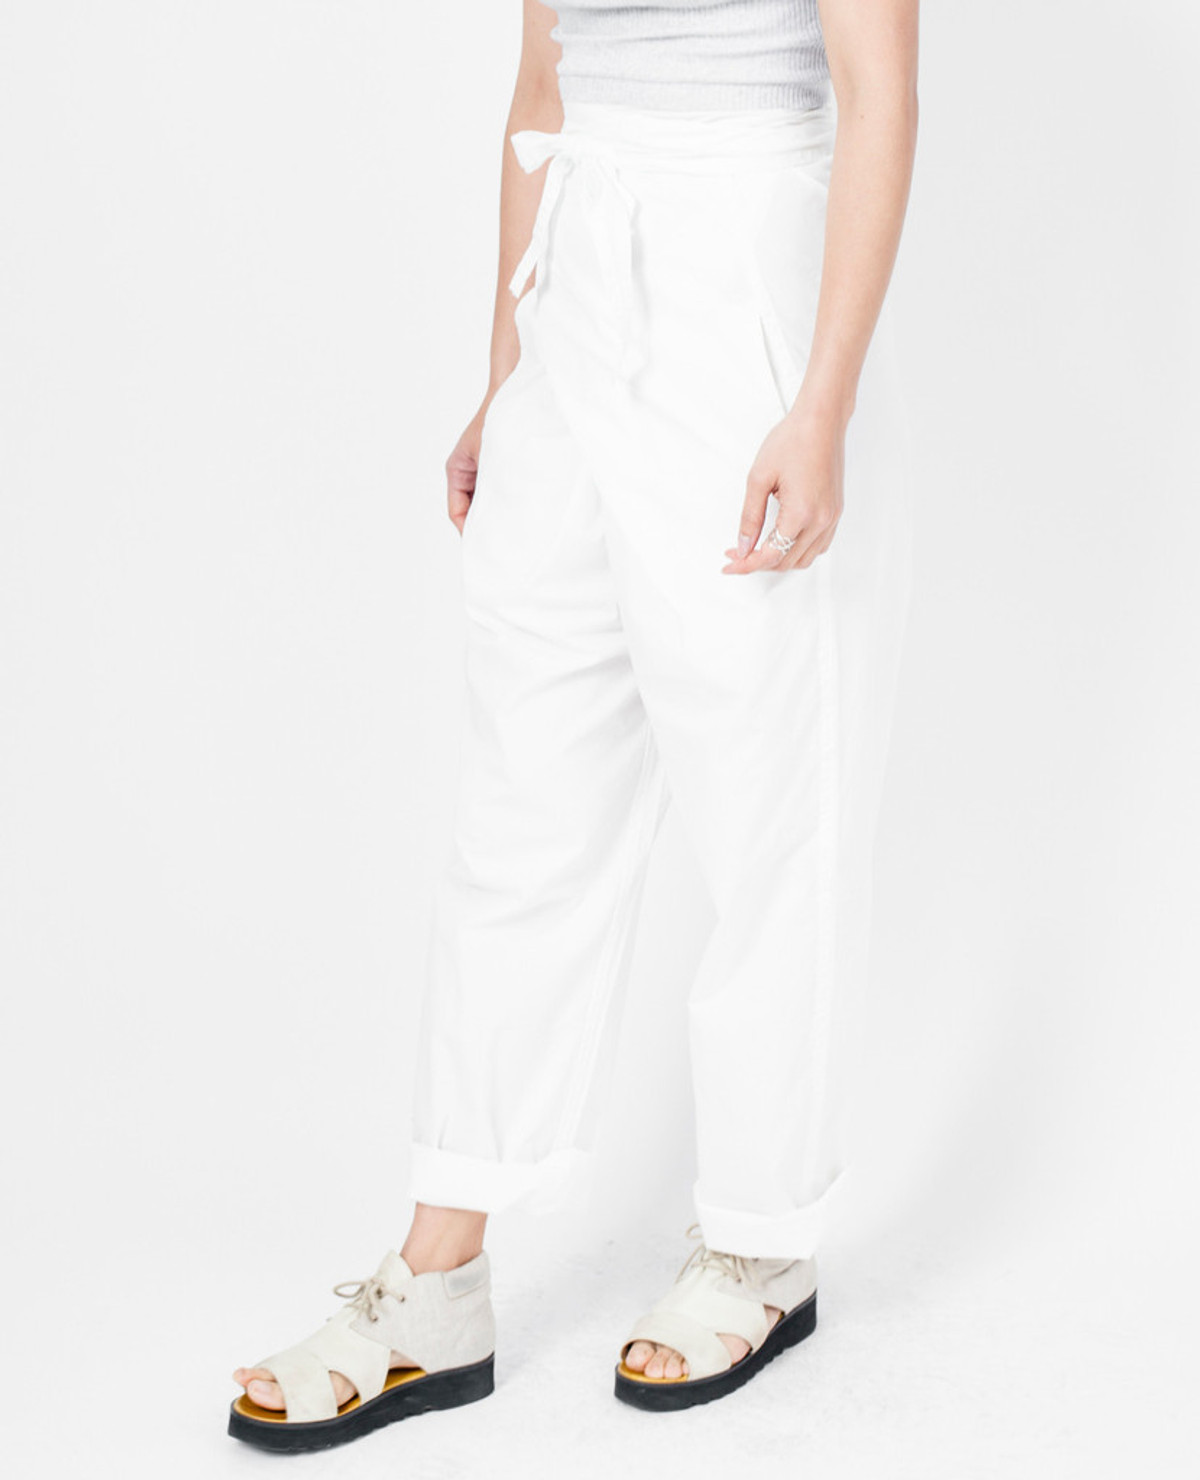 Cosmic Wonder Basic Pants - White